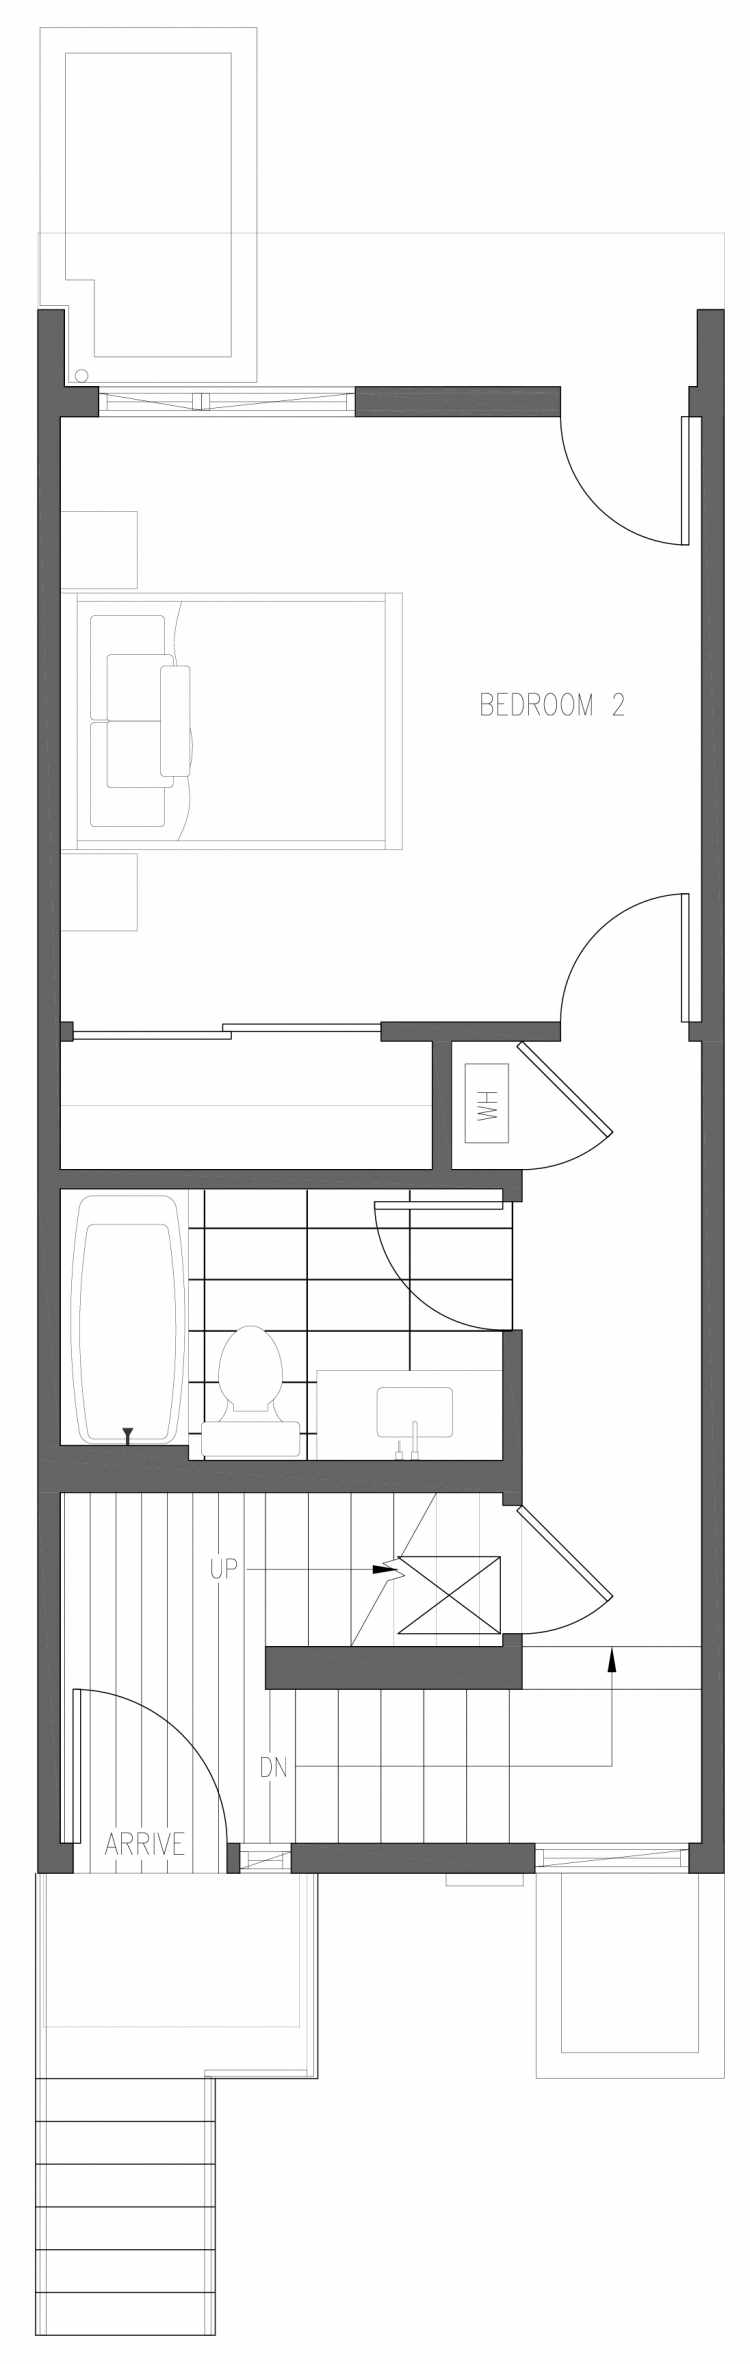 First Floor Plan of 6419 14th Ave NW, One of the Oleana Townhomes in Ballard by Isola Homes